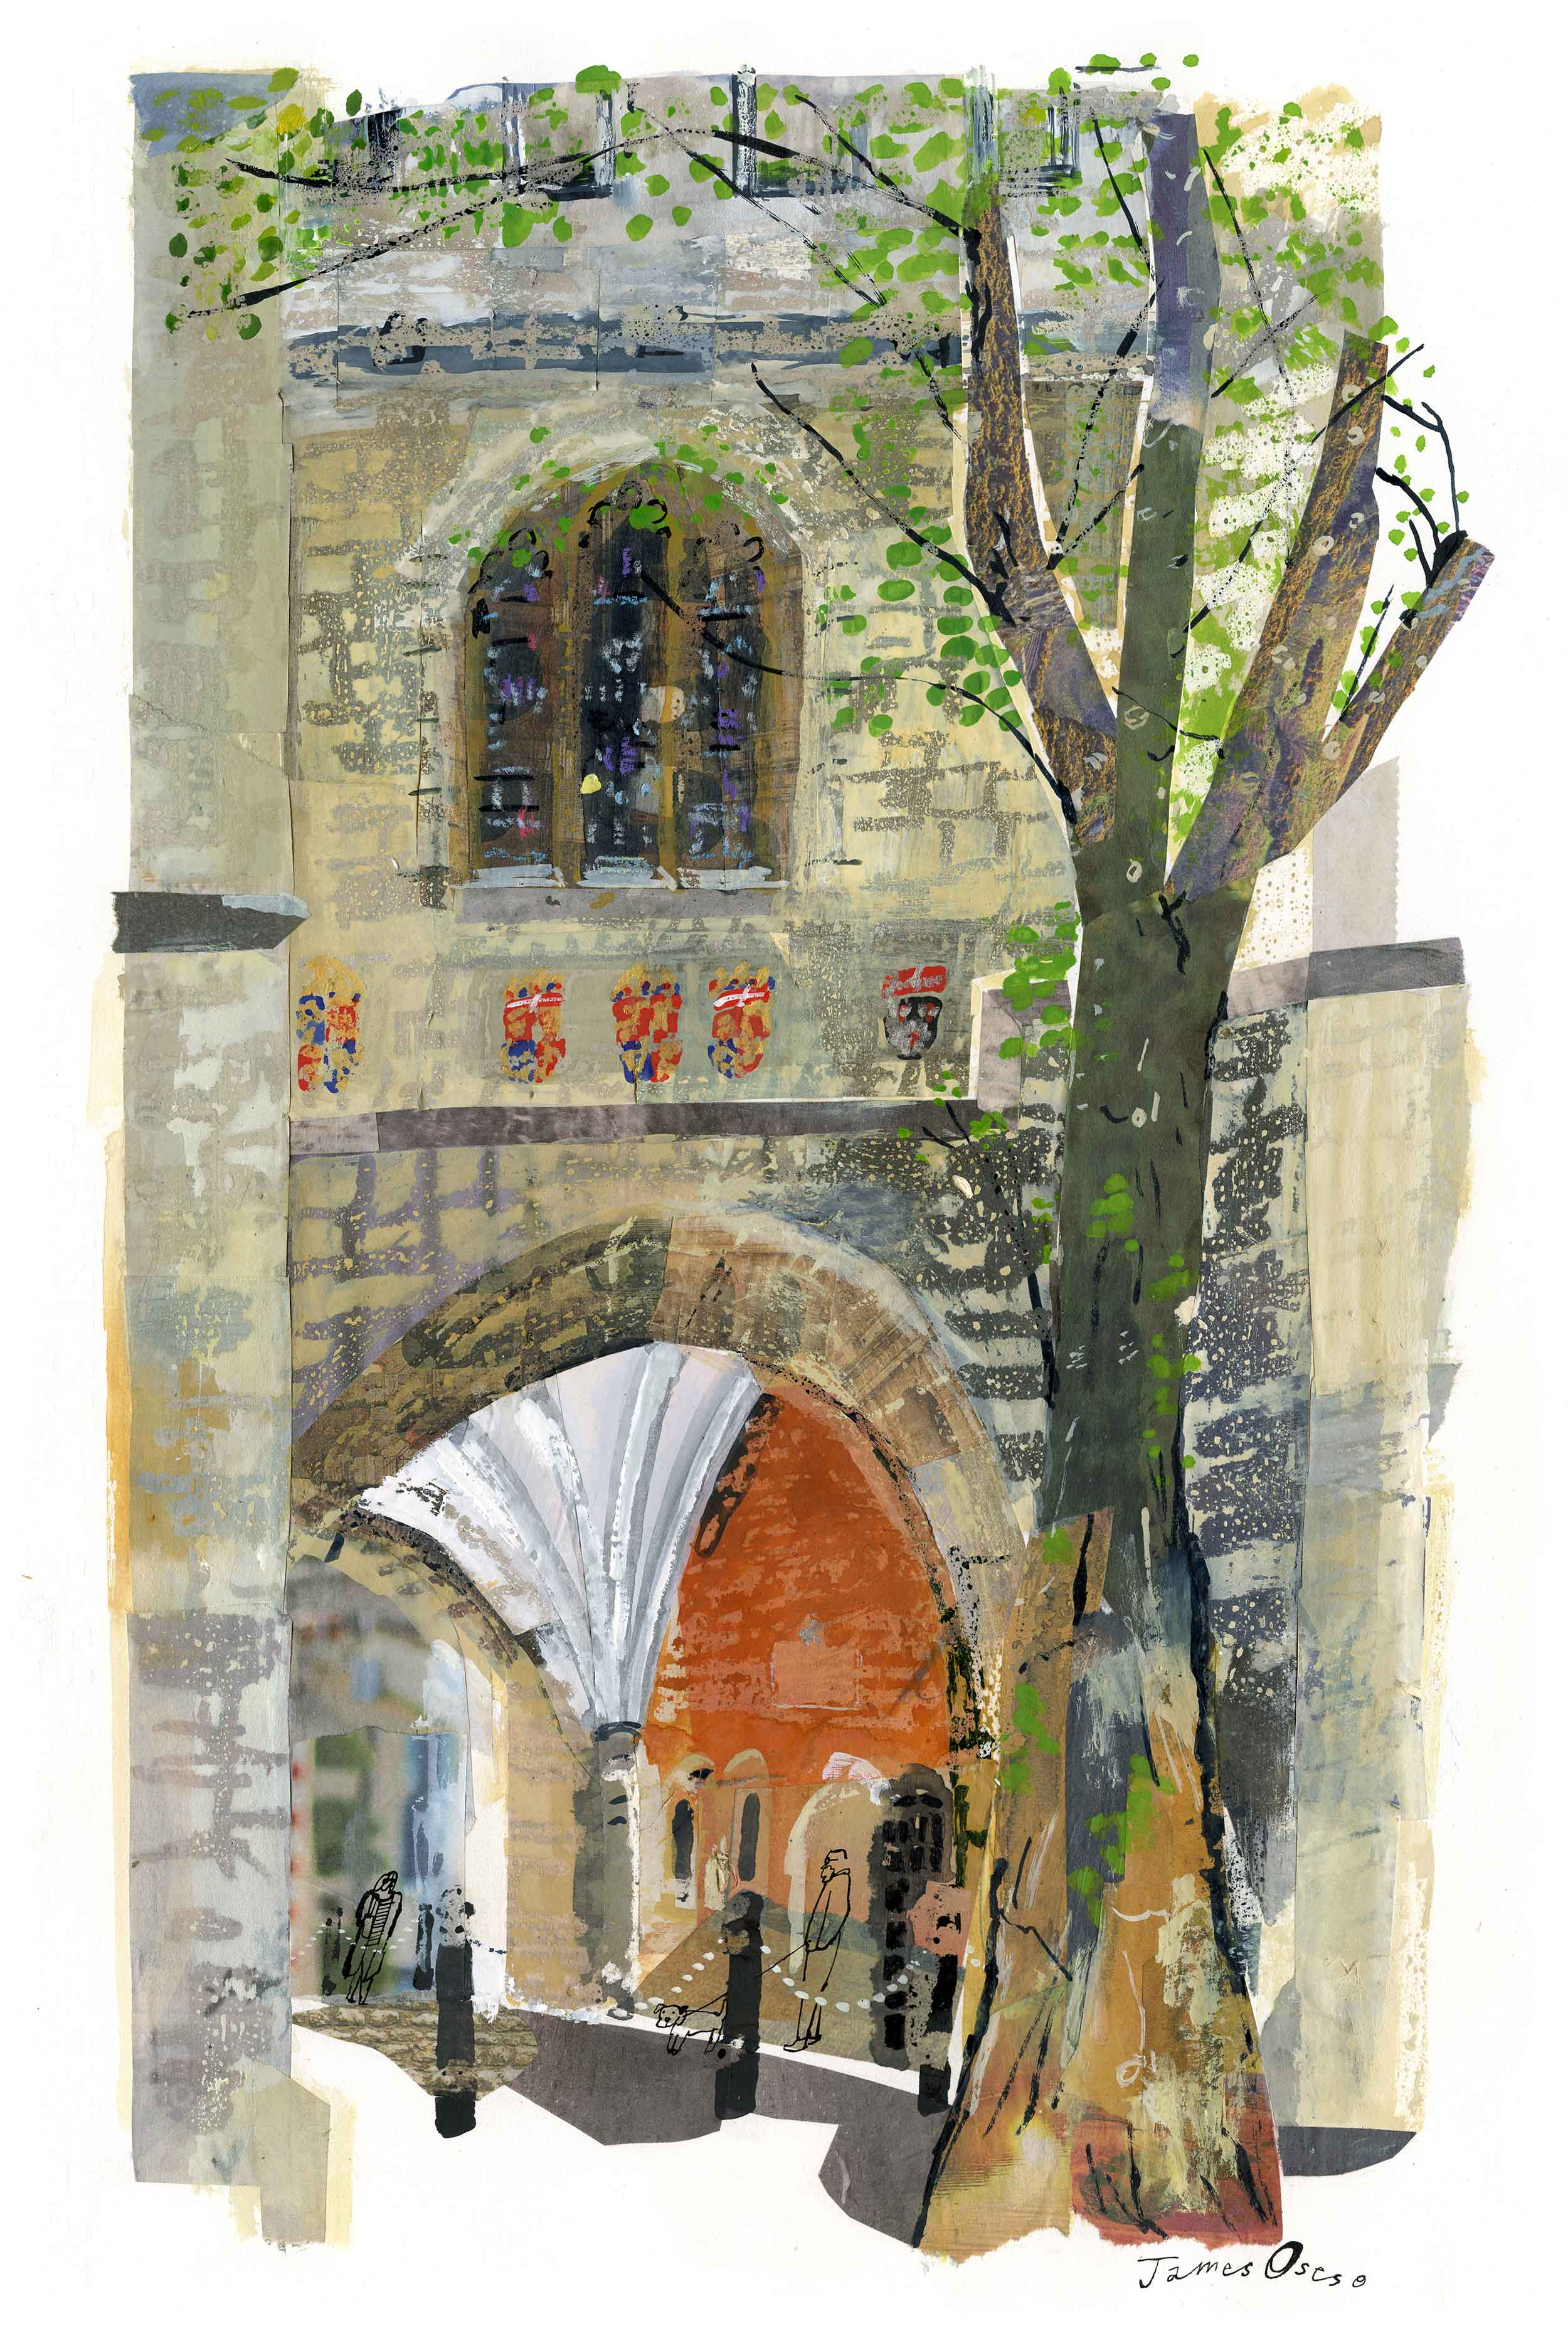 St John's Gate by James Oses